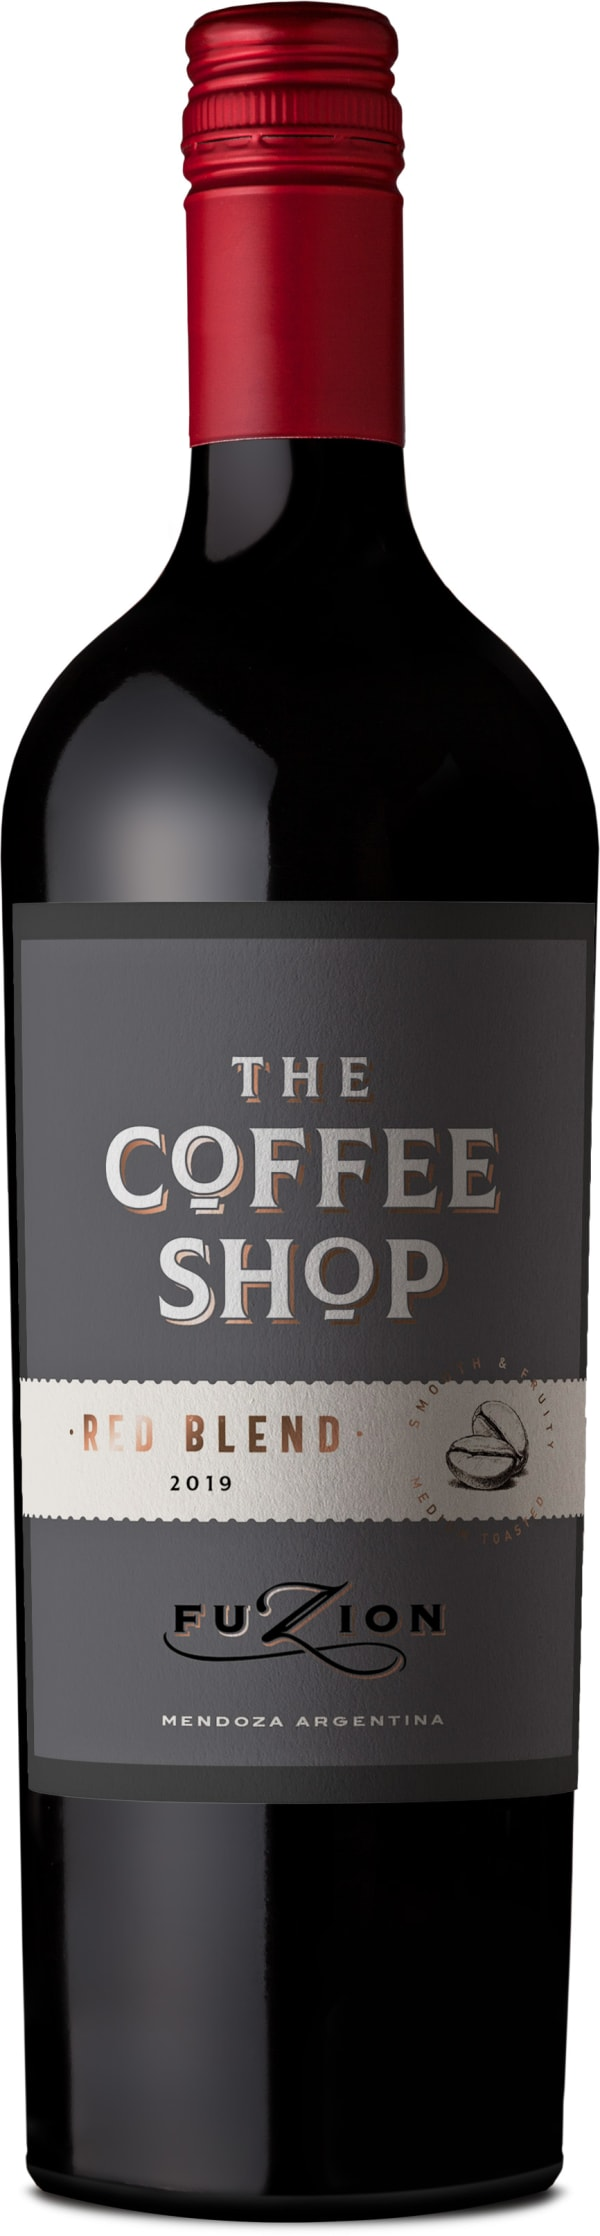 Fuzion The Coffee Shop Red Blend 2014